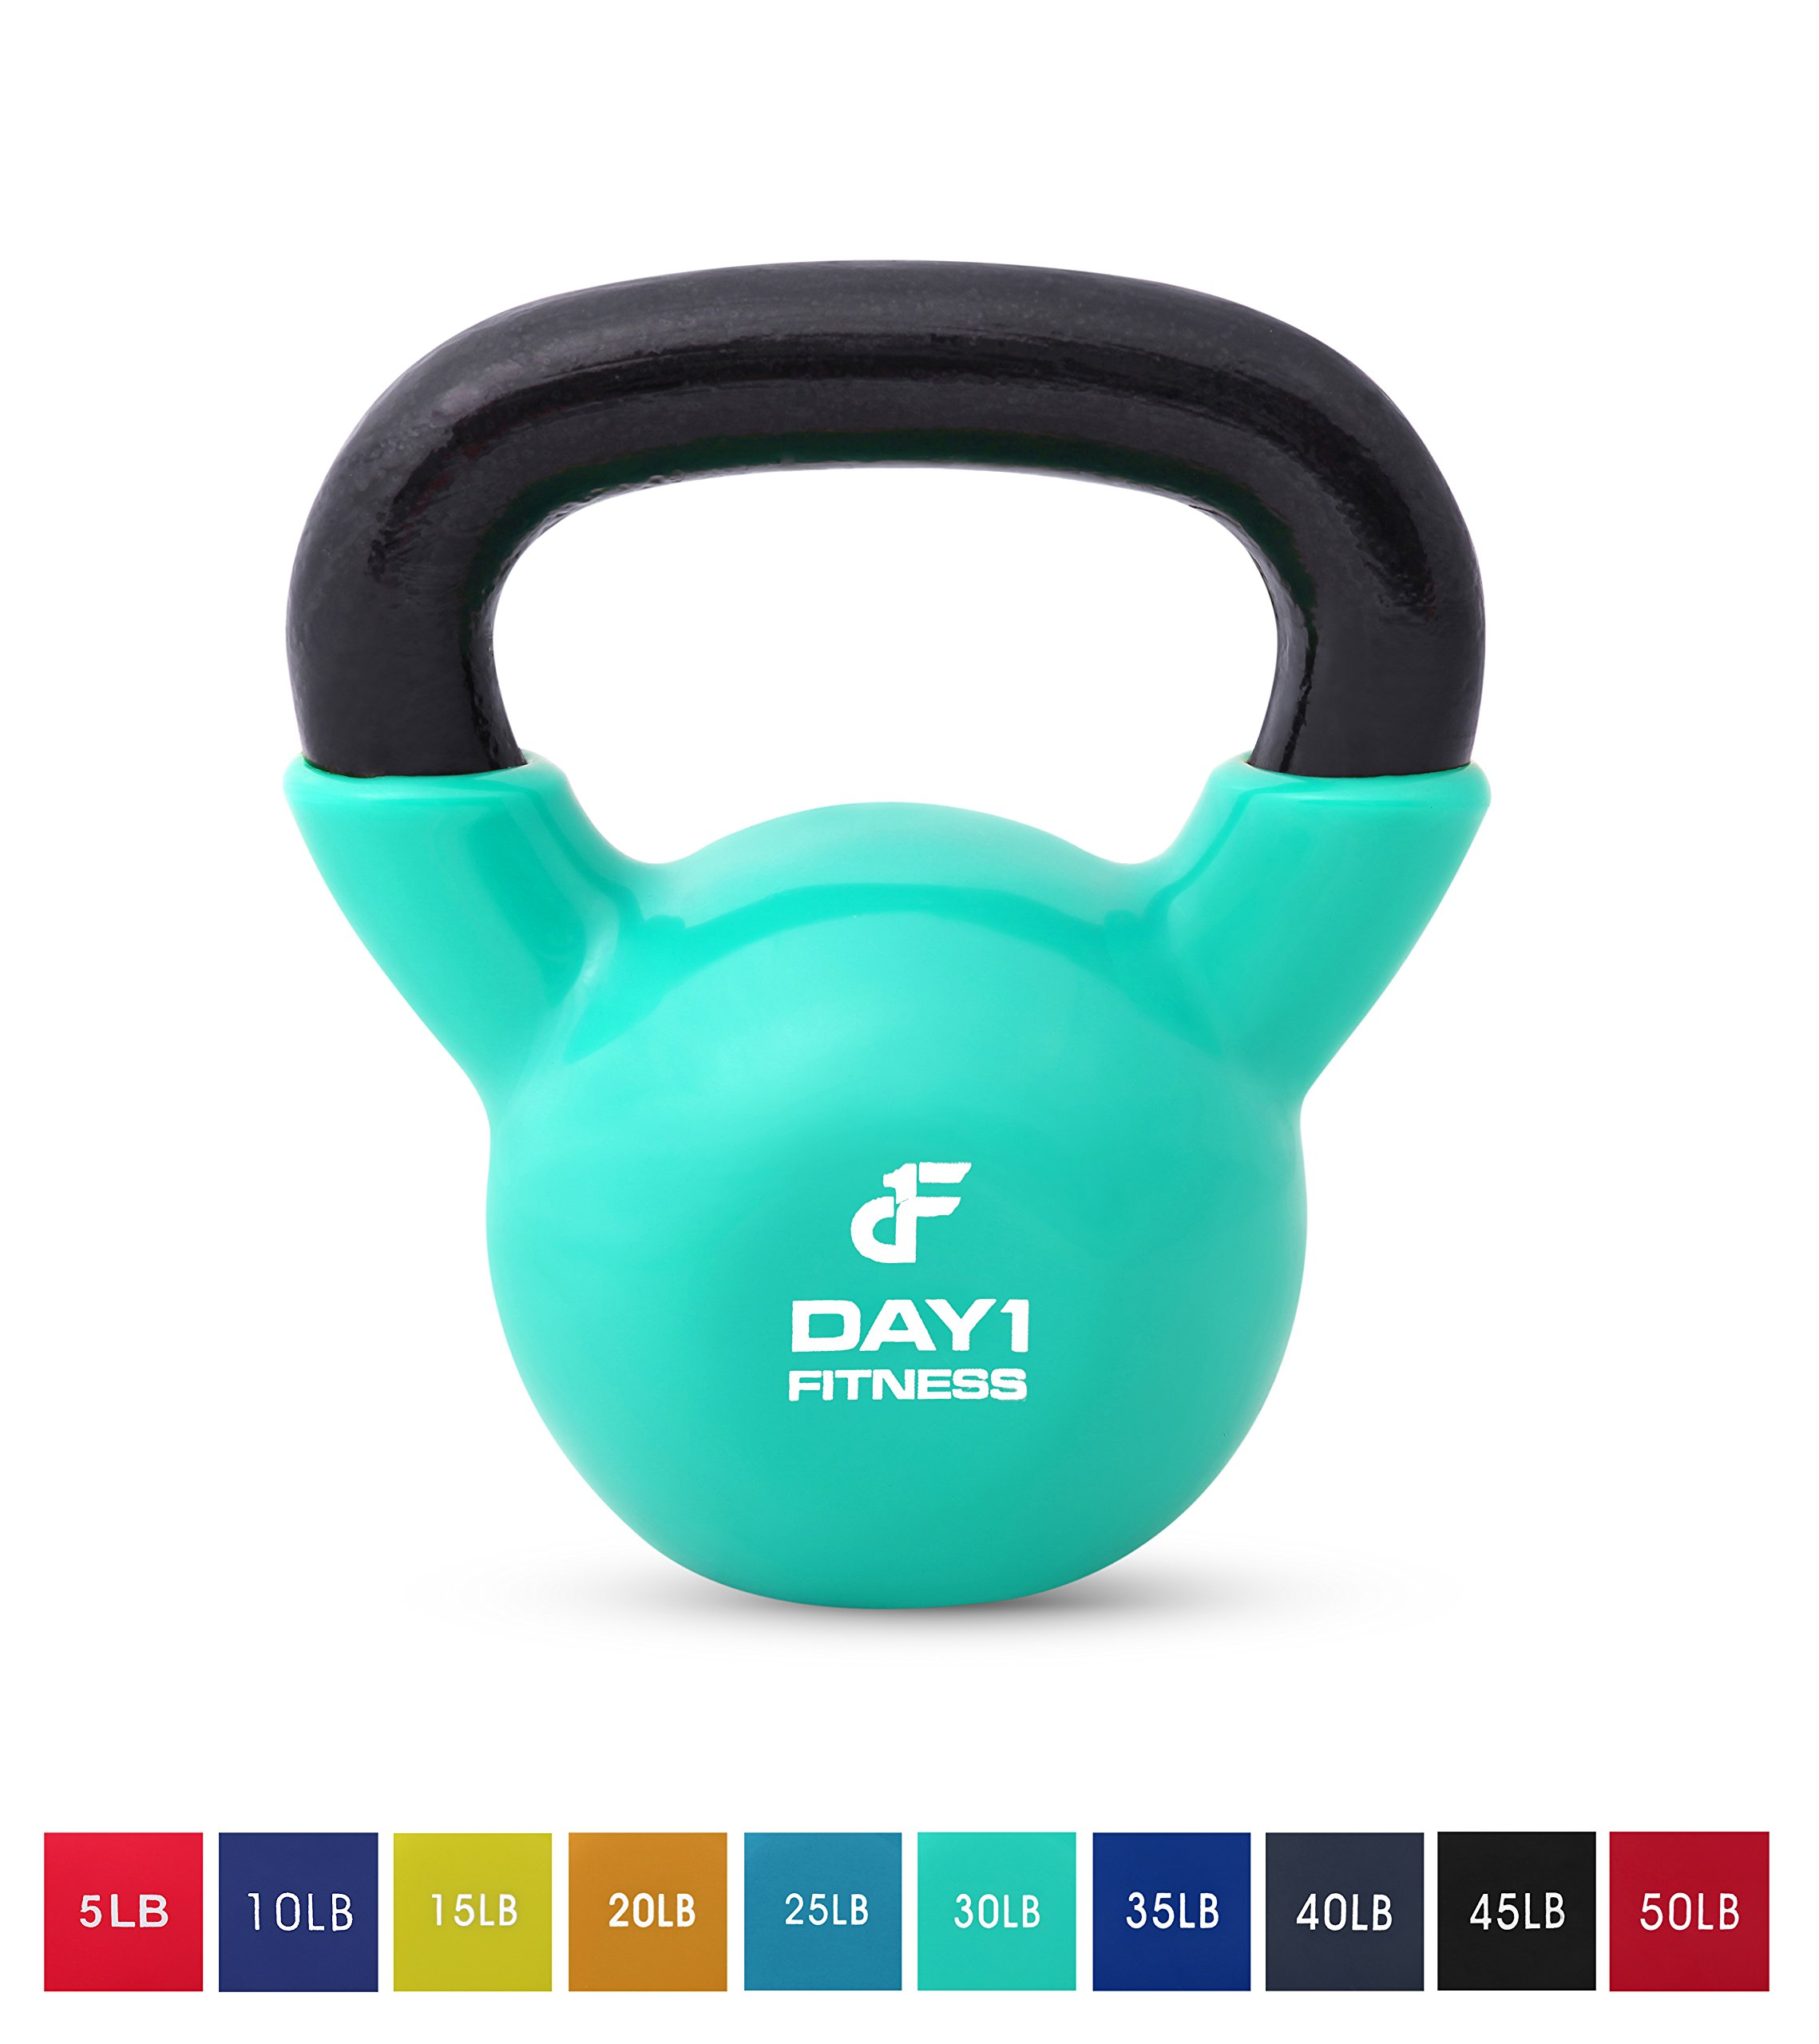 Day 1 Fitness Kettlebell Weights Vinyl Coated Iron 30 Pounds - Coated for Floor and Equipment Protection, Noise Reduction - Free Weights for Ballistic, Core, Weight Training by Day 1 Fitness (Image #1)